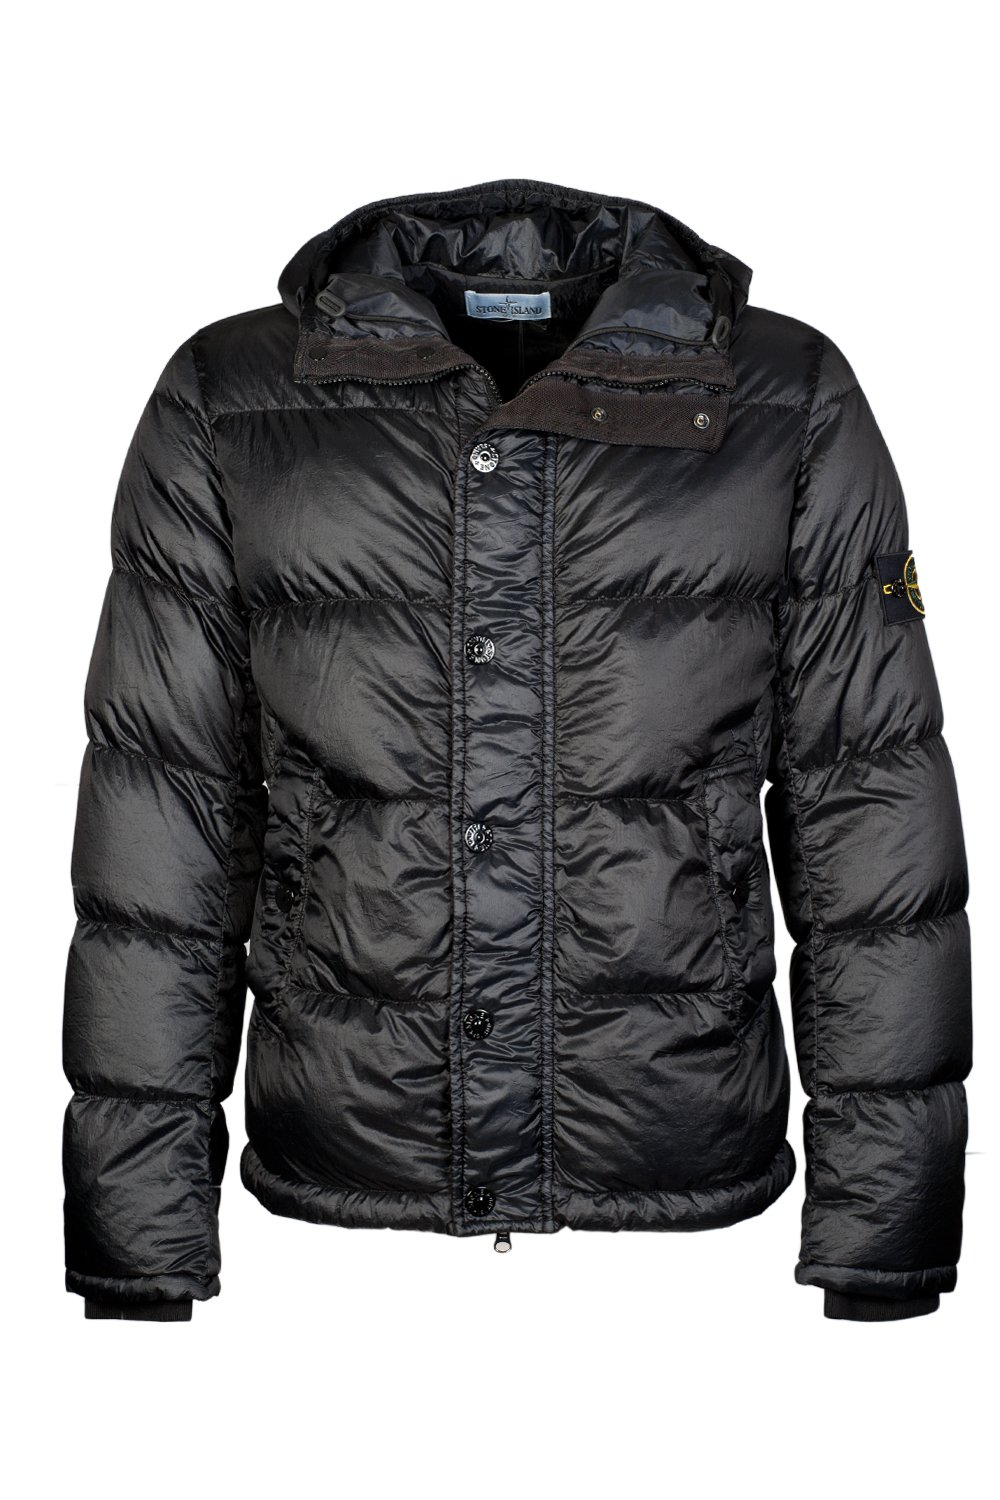 Stone-Island-Hooded-Puffer-Jacket-in-Brown-and-Navy-Blue-591545424